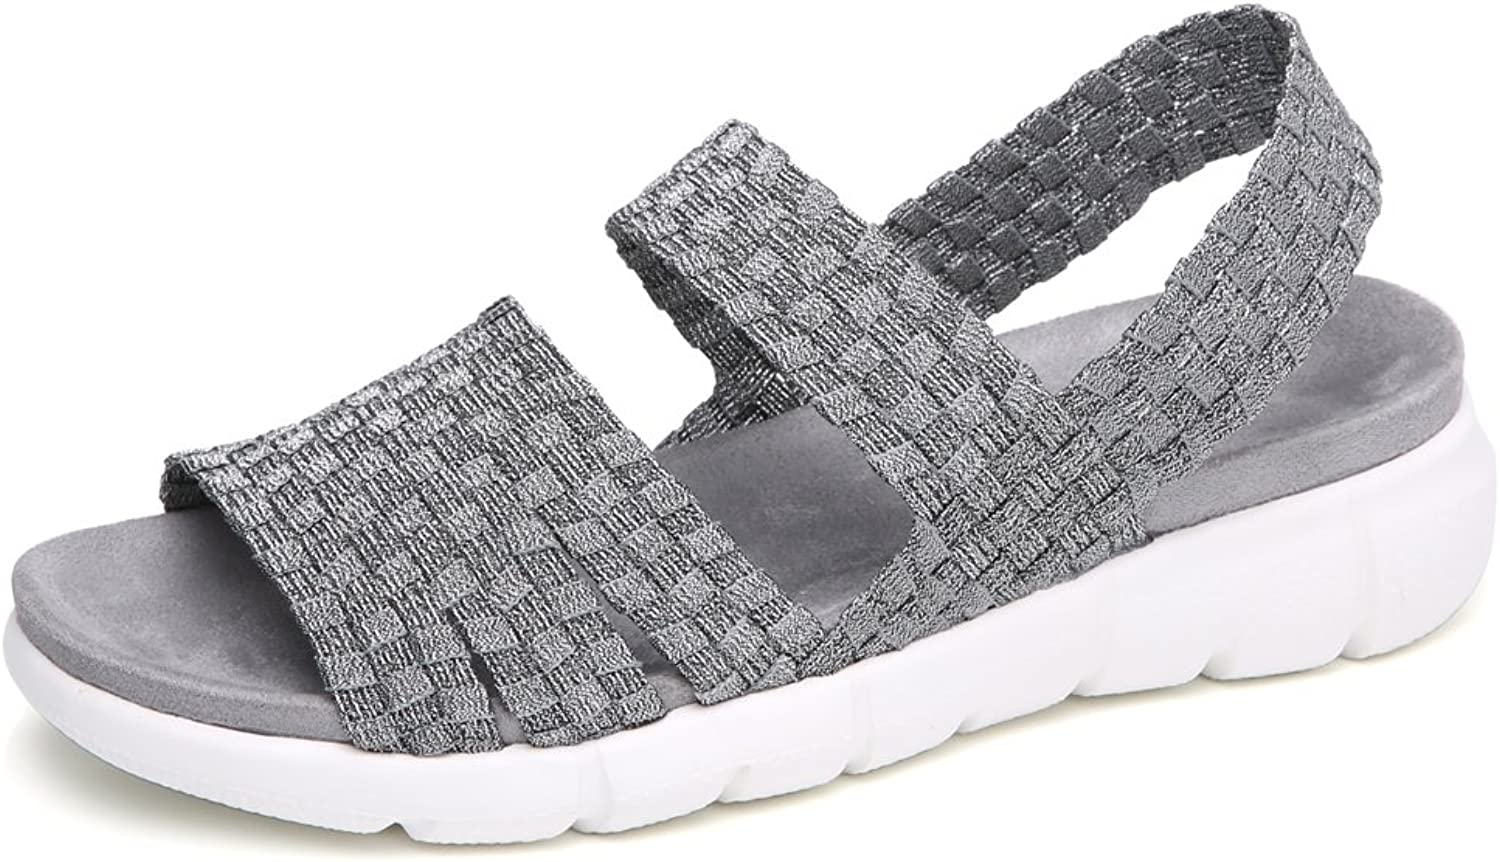 YKH Womens Open Toe Woven Flat Slingback Sandals Summer Slip On Stretchy Mary Jane Sandles shoes